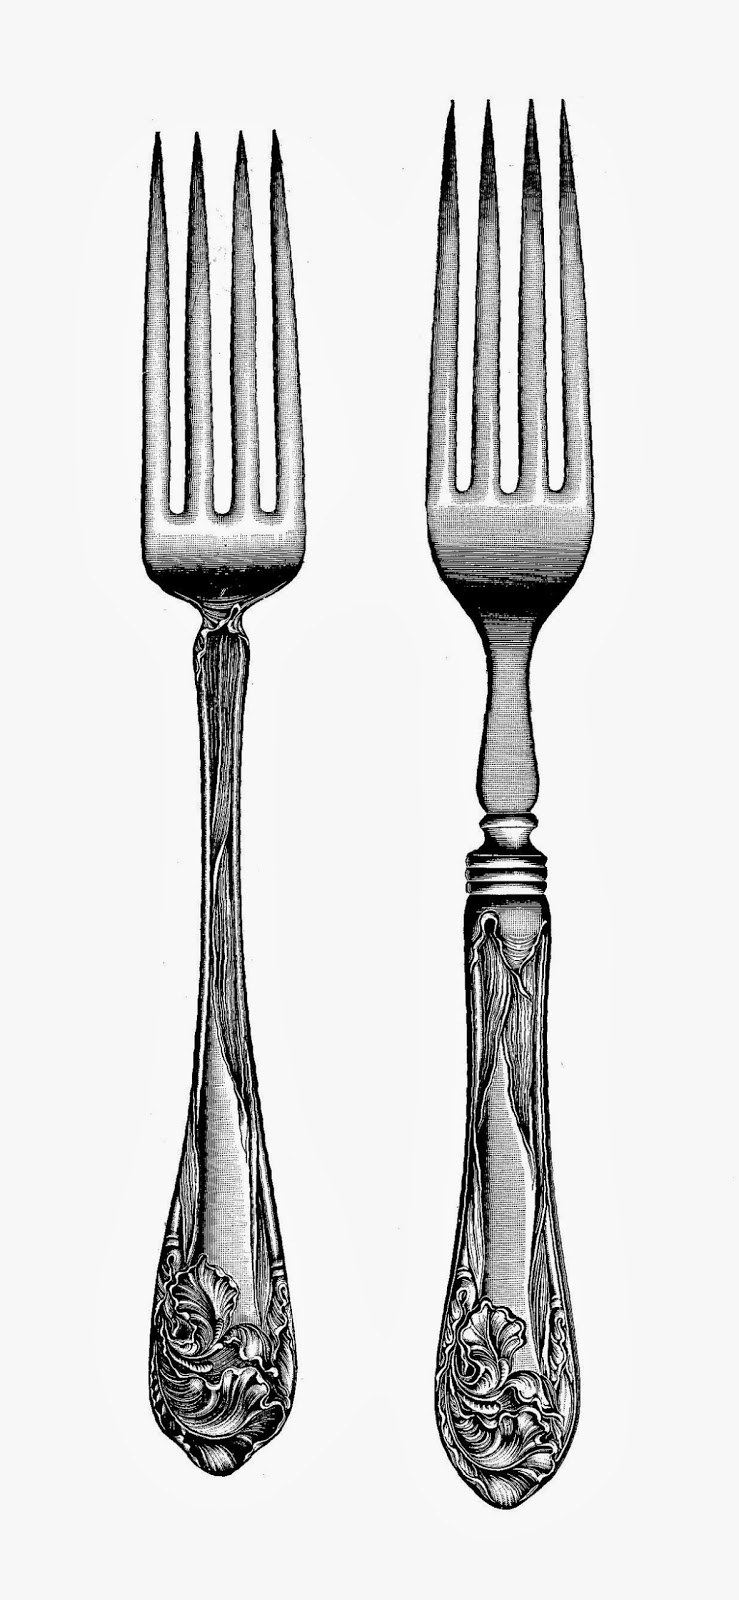 Fancy fork clipart banner royalty free download Download fancy fork transparent clipart Knife Fork Spoon banner royalty free download